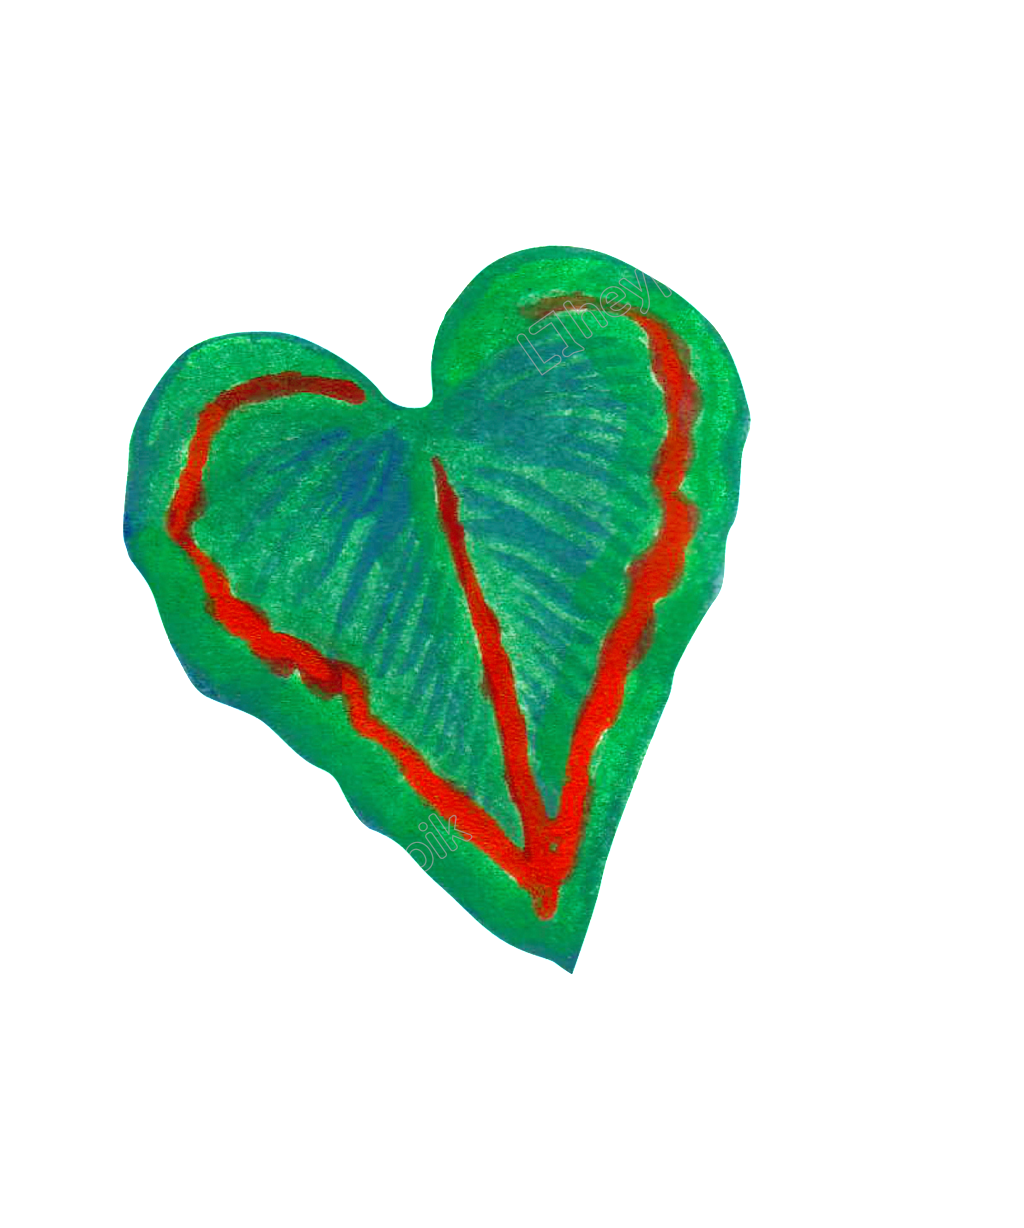 Painted heart png. Shaped leaves transparent free